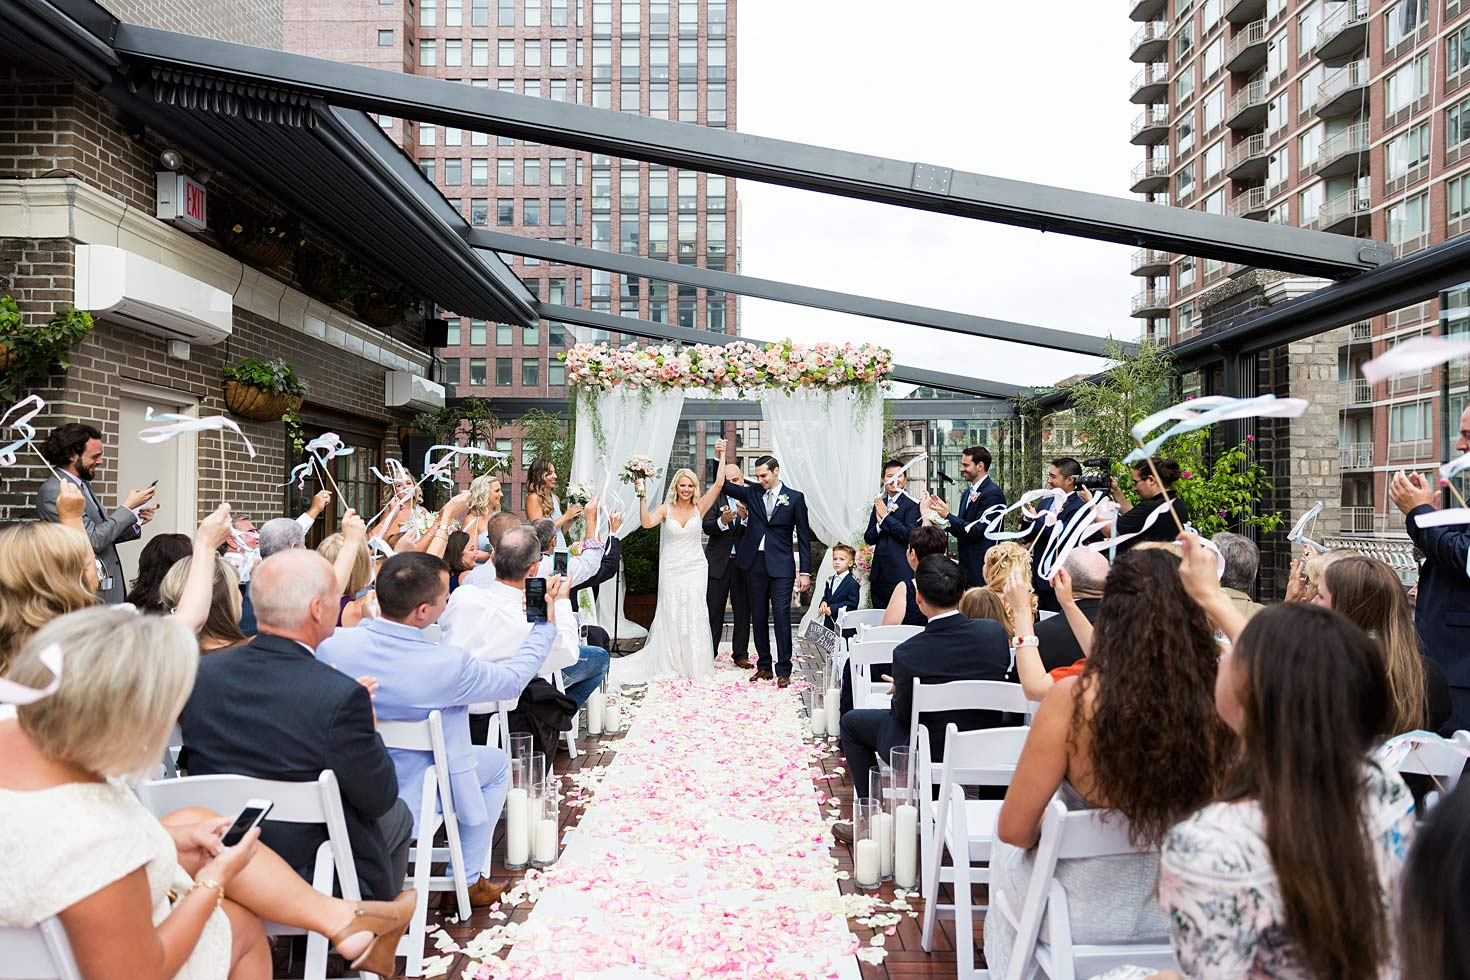 NYC Wedding Venue with Rooftop Garden on 5th Avenue | Midtown Loft